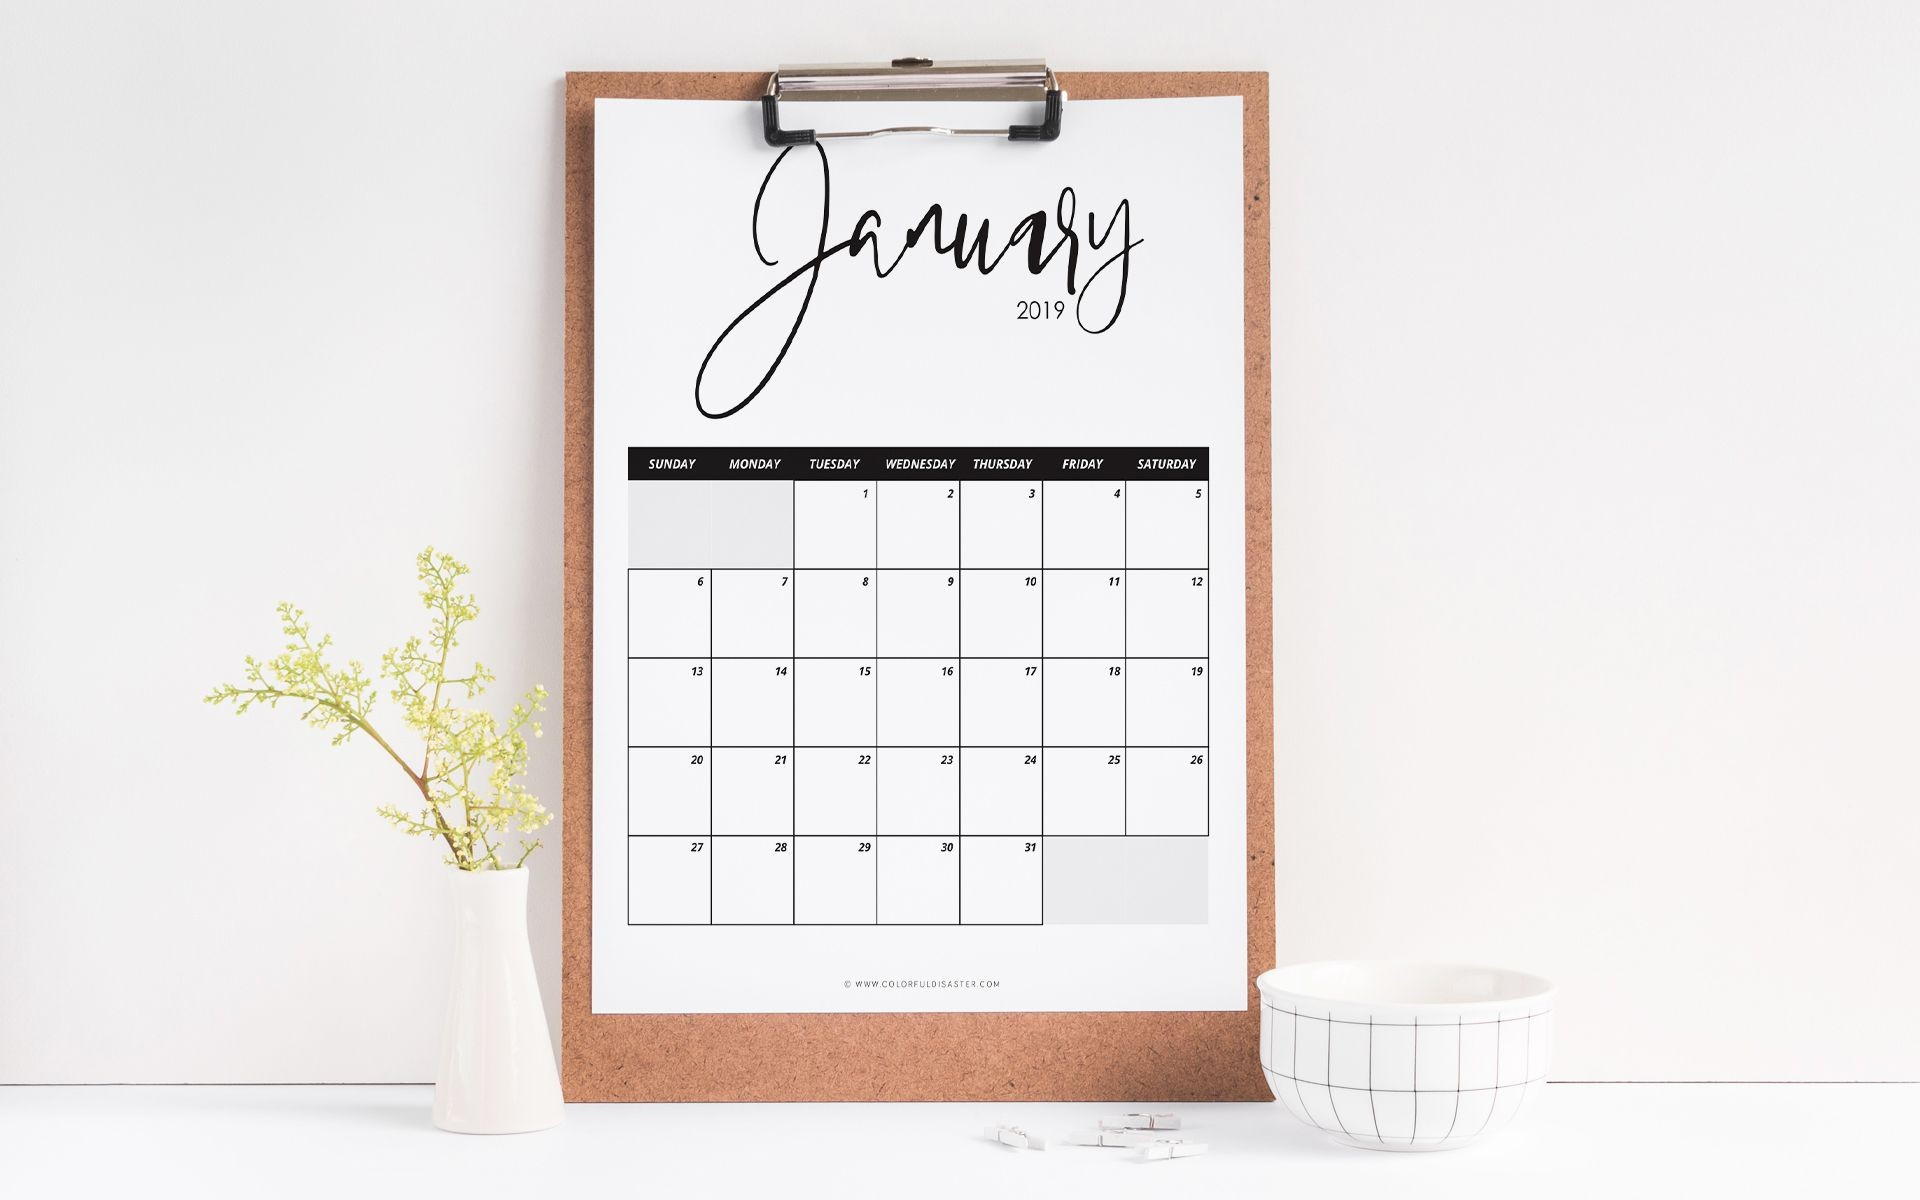 March 2019 Calendar Landscape Más Reciente 10 Stylish Free Printable Calendars for 2019 Of March 2019 Calendar Landscape Mejores Y Más Novedosos 2015 2016 2017 Calendar 4 Three Year Printable Pdf Calendars